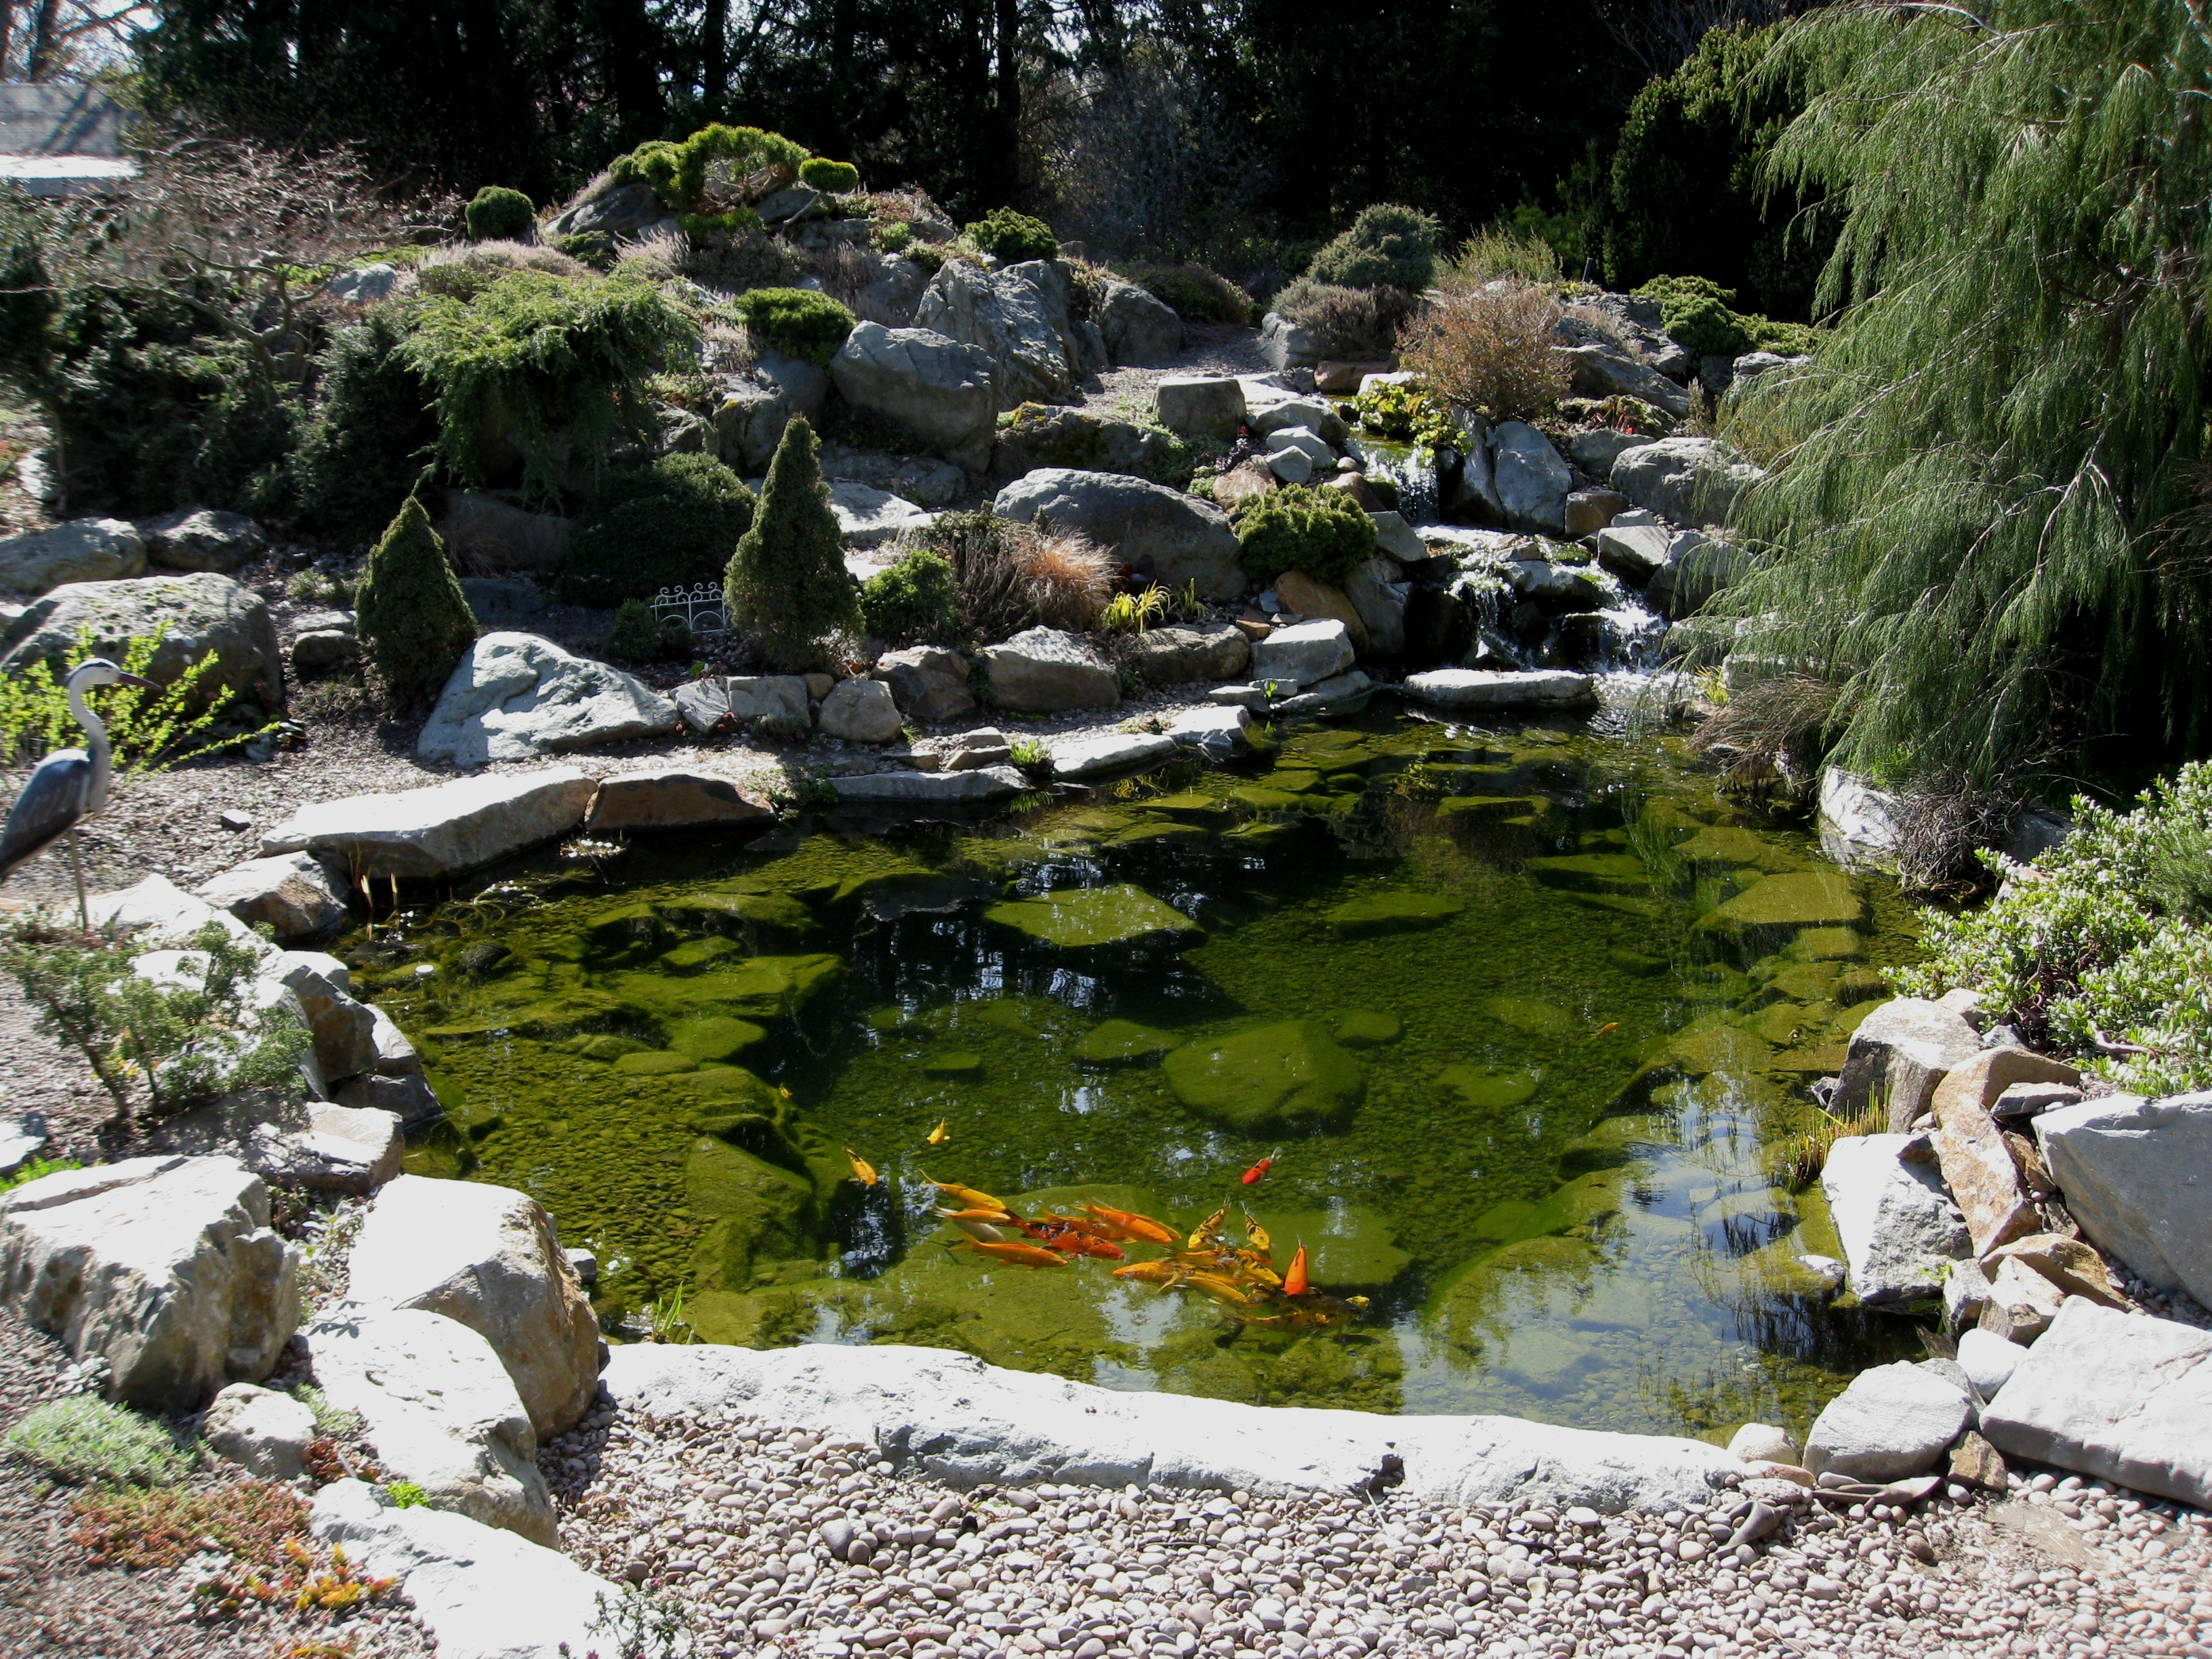 Koi pond flickr photo sharing for Koi fish pond rocks